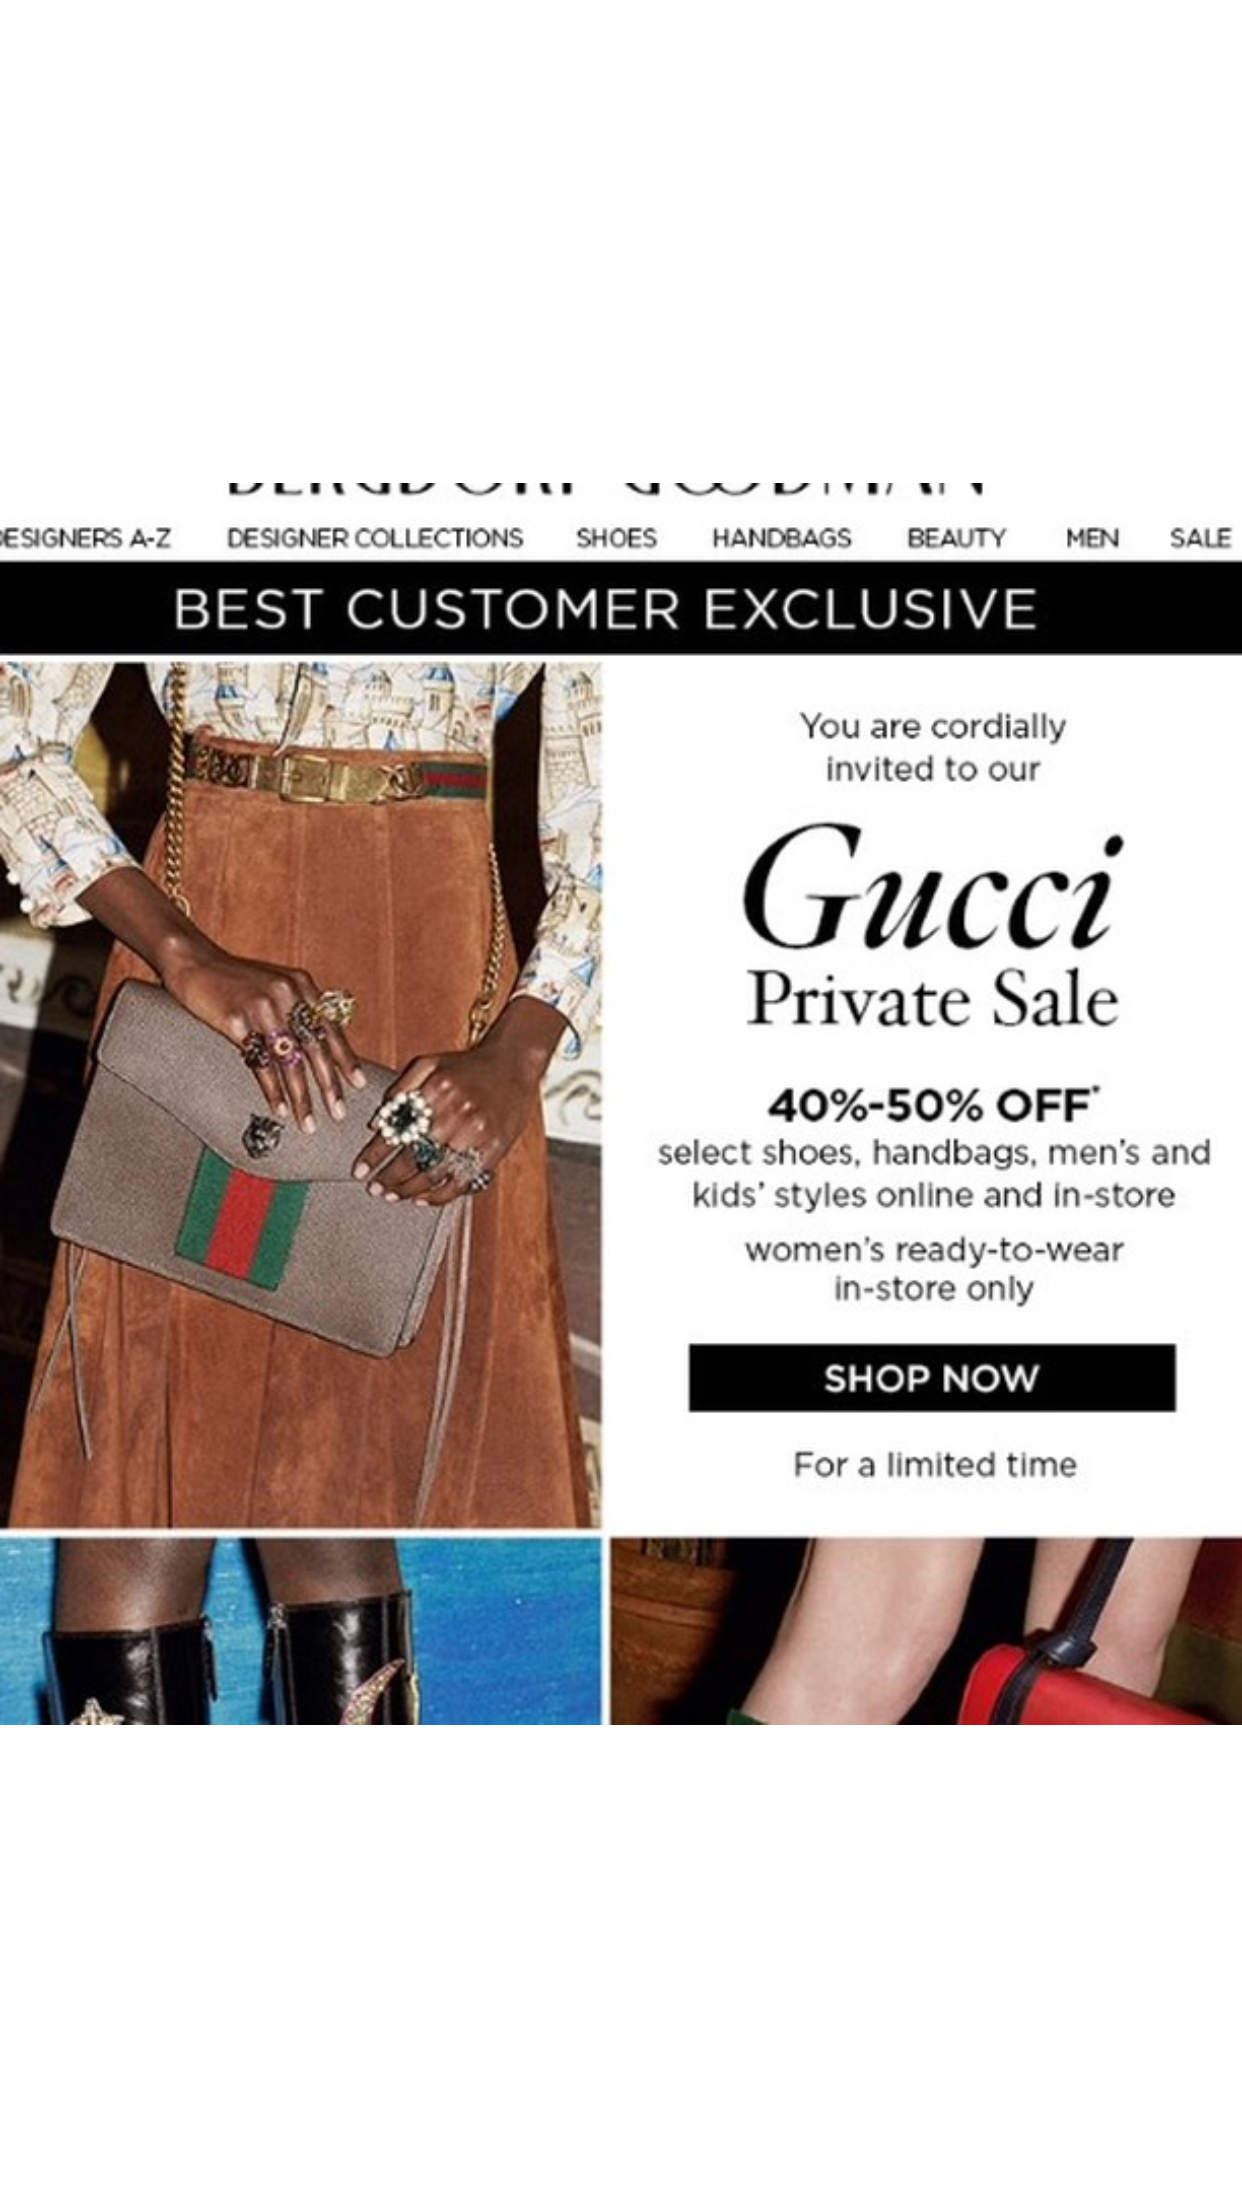 gucci on sale. and in case you are not too keen on the idea of walking shopping, neiman marcus is also quietly holding a gucci sale that includes r